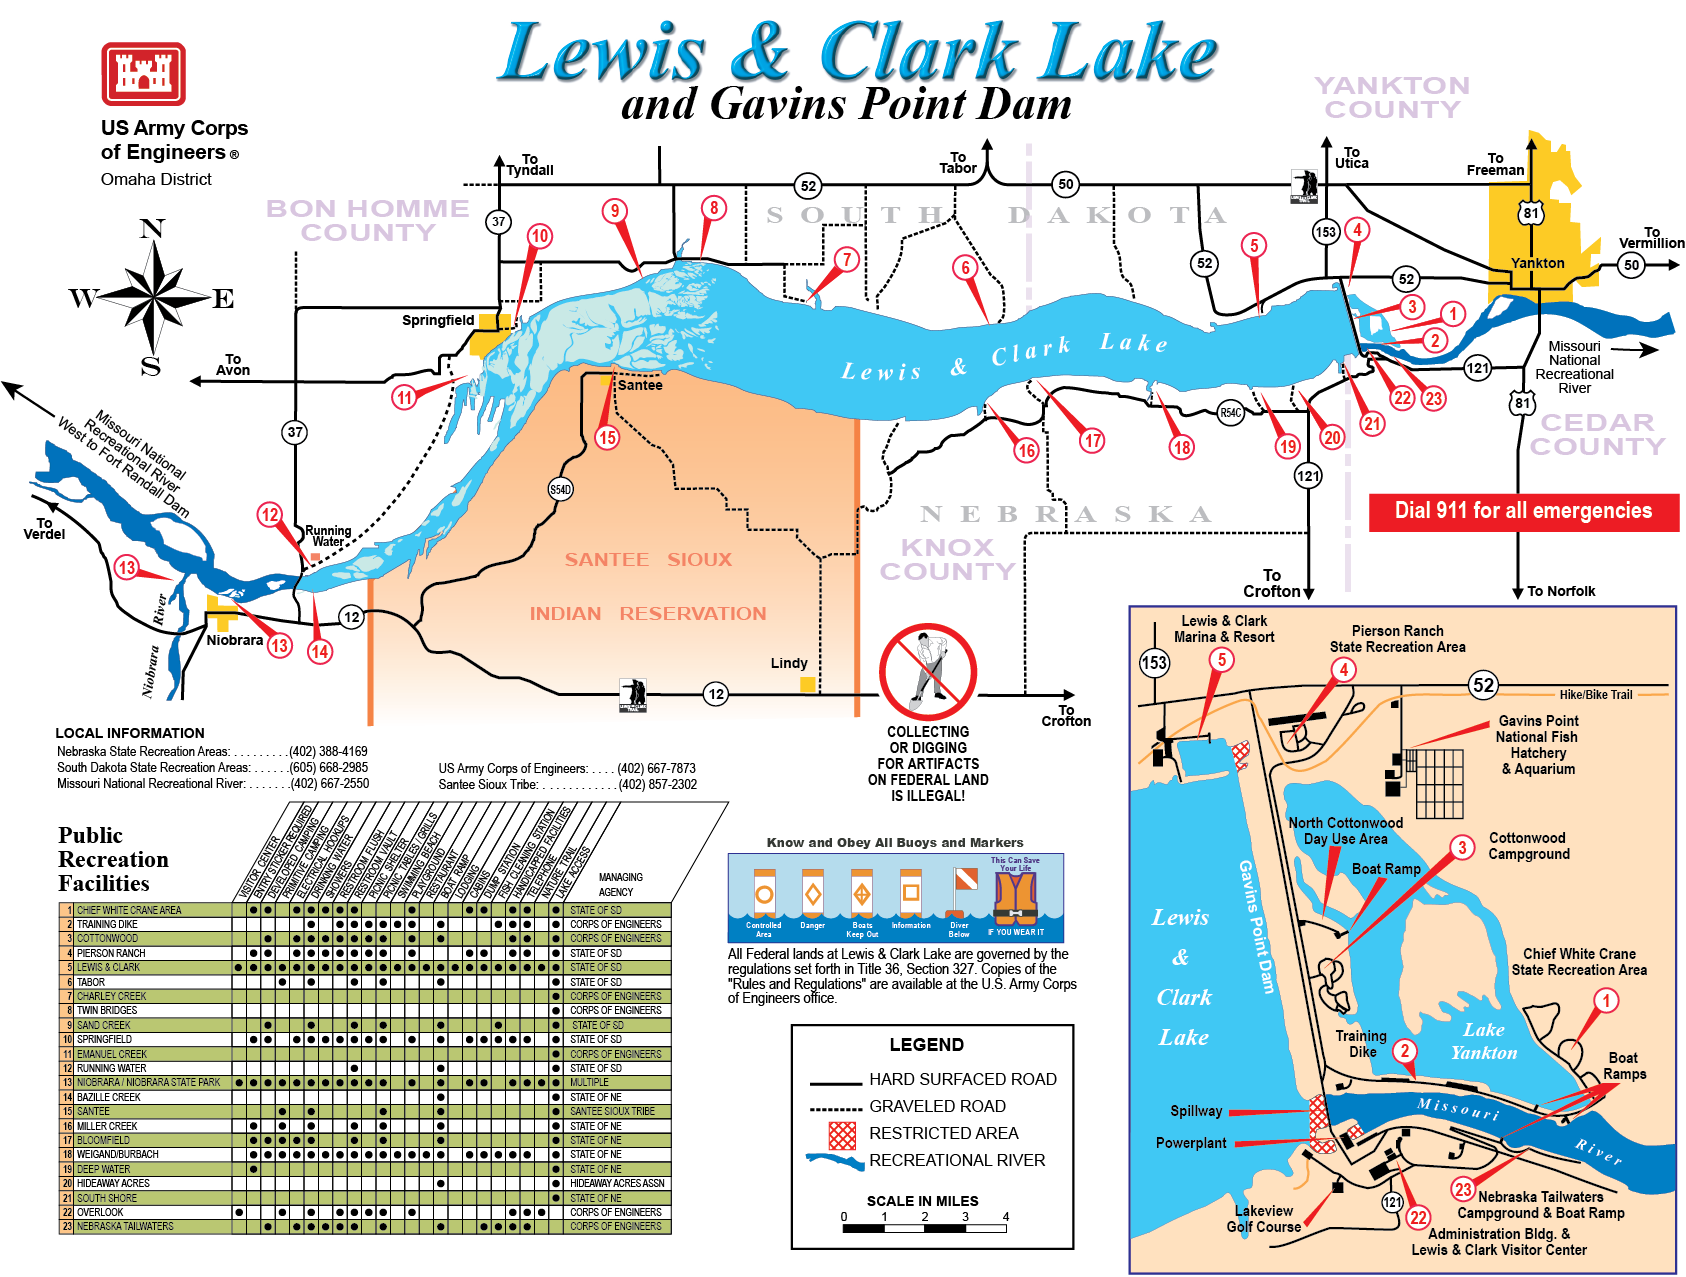 Omaha District Missions Dam And Lake Projects Missouri River - Omaha-on-us-map